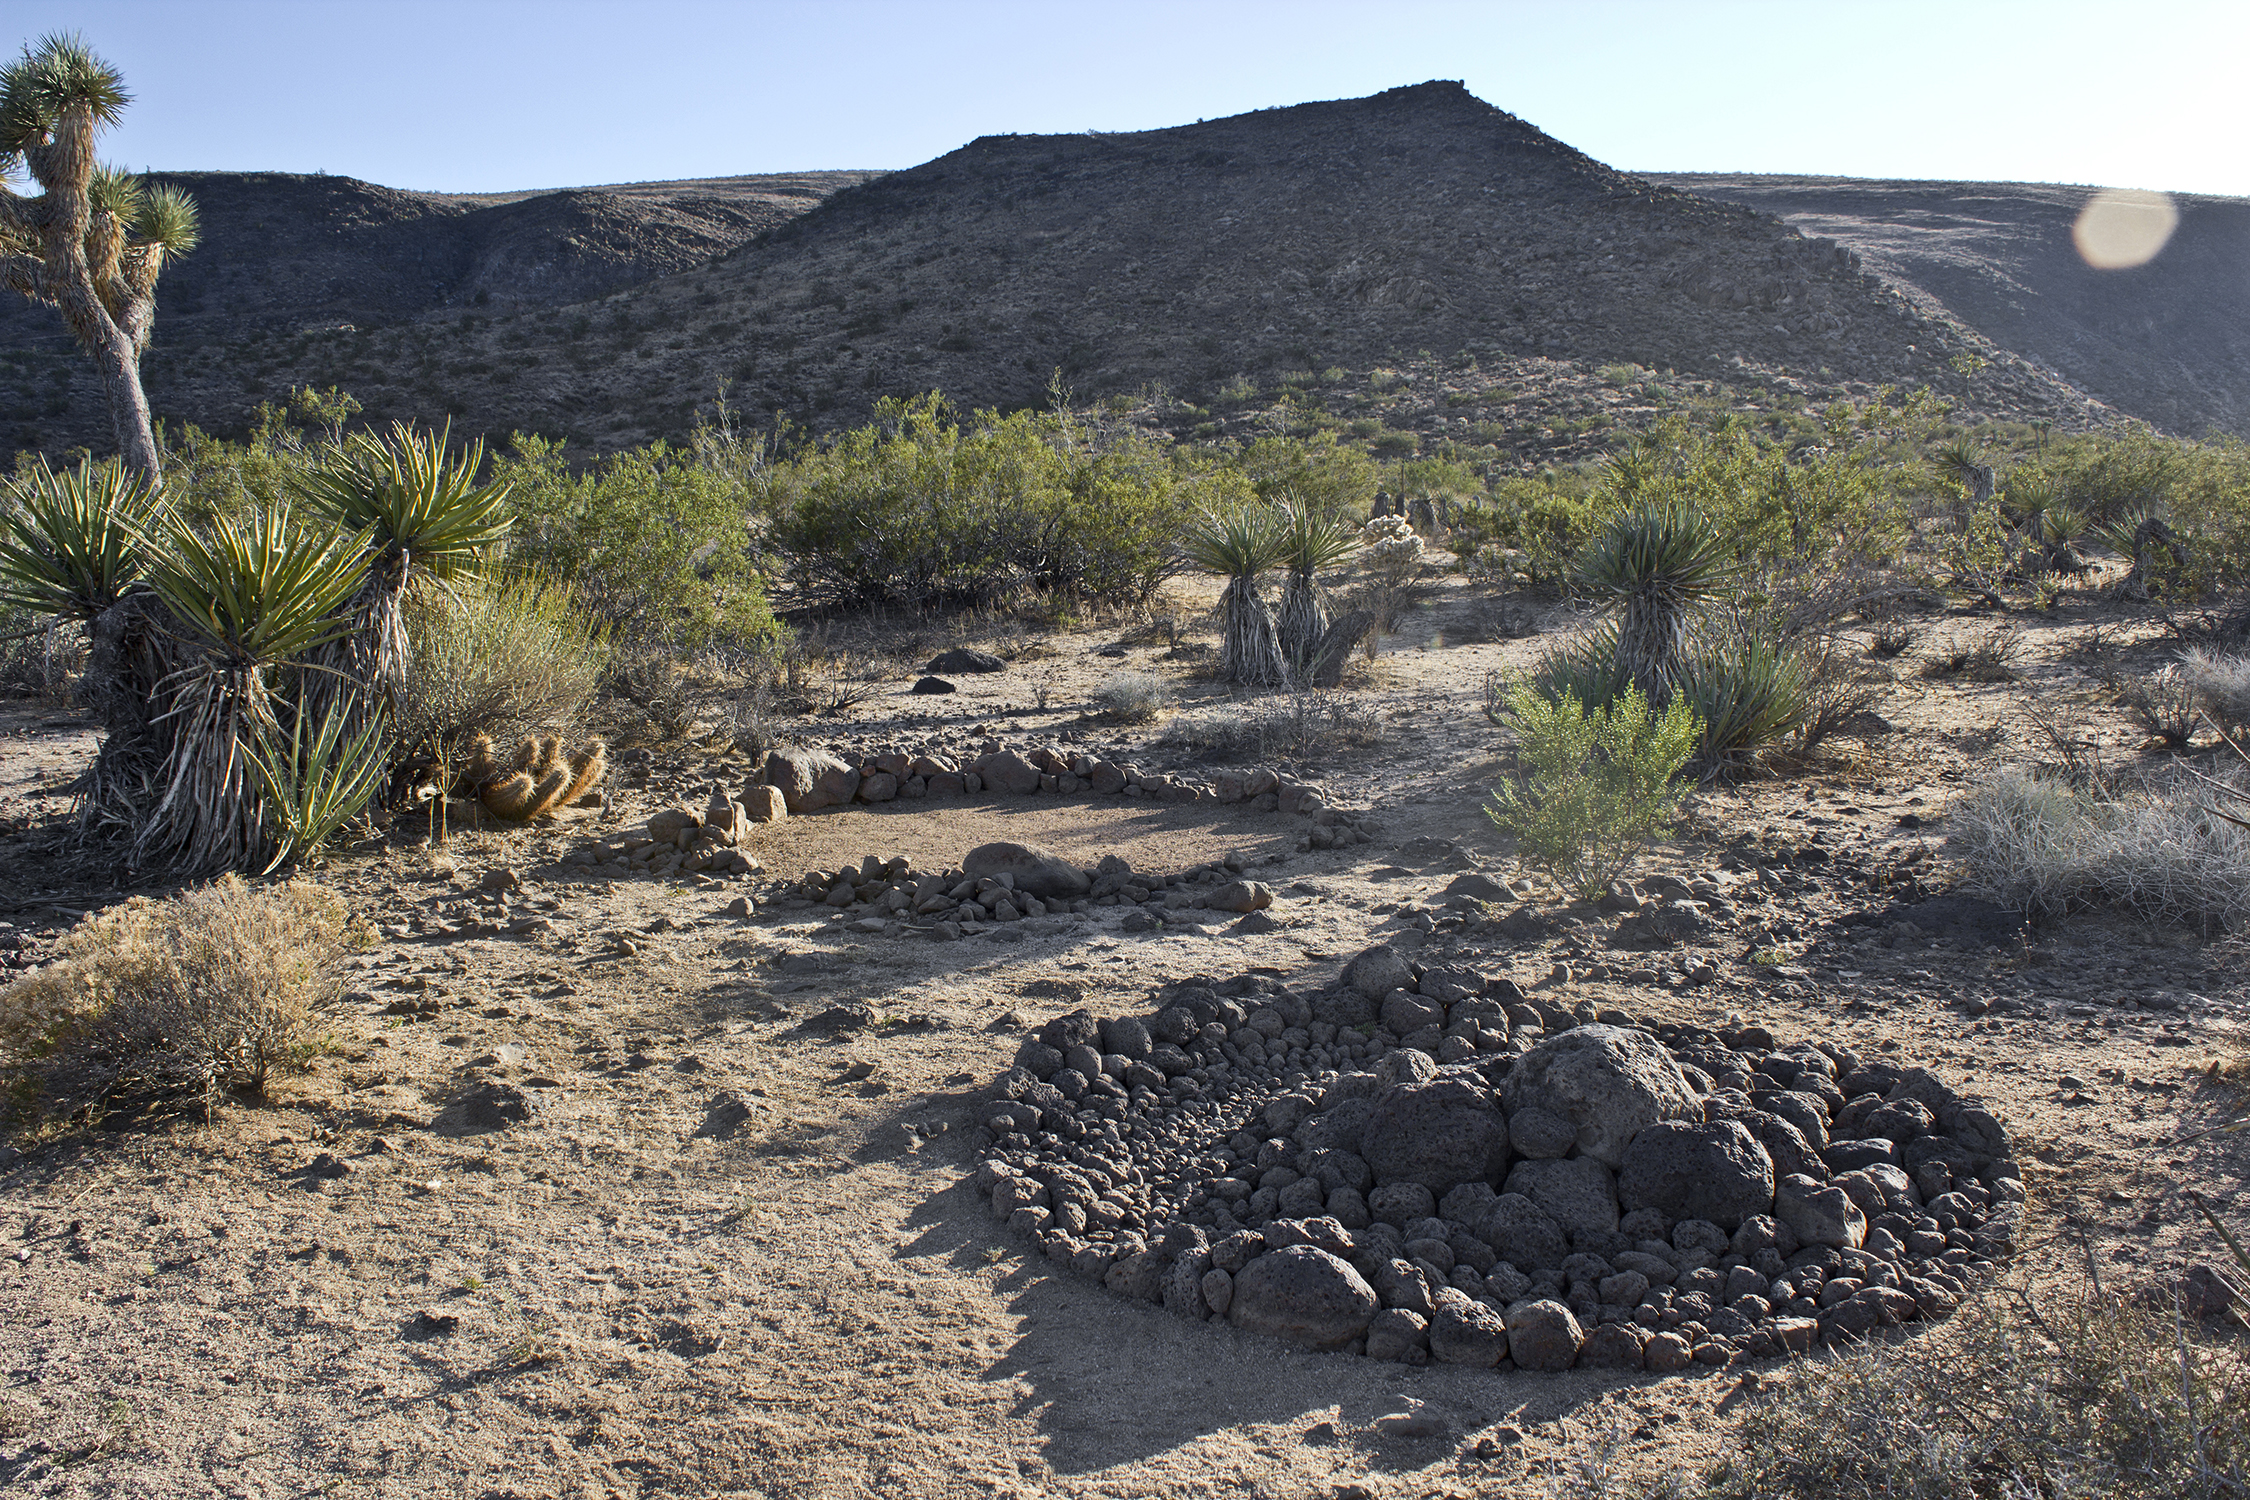 """Nocturnal Animals / Janus""   Materials: lava rocks was created in 2017 by  Andres Payan-Estrada  an the five acre JEMEZ HOMESTEAD : STOLEN LAND art project in Flamingo Heights at the foot of Flat Top Mesa. The re-arrangement of rocks and sand sits on the border of the  Sand to Snow National Monument Black Lava Butte and Flat Top Mesa addition, an approximately rectangular area 3 by 3.5 miles in extent, containing two broad, volcanic mesas;  Black Lava Butte  to the west and  Flat Top  to the east. They rise 250 feet above the surrounding desert plains, along the west side of Homestead Valley, north of the town of Yucca Valley, and all the area is easily reached from paved roads along the south and east sides."